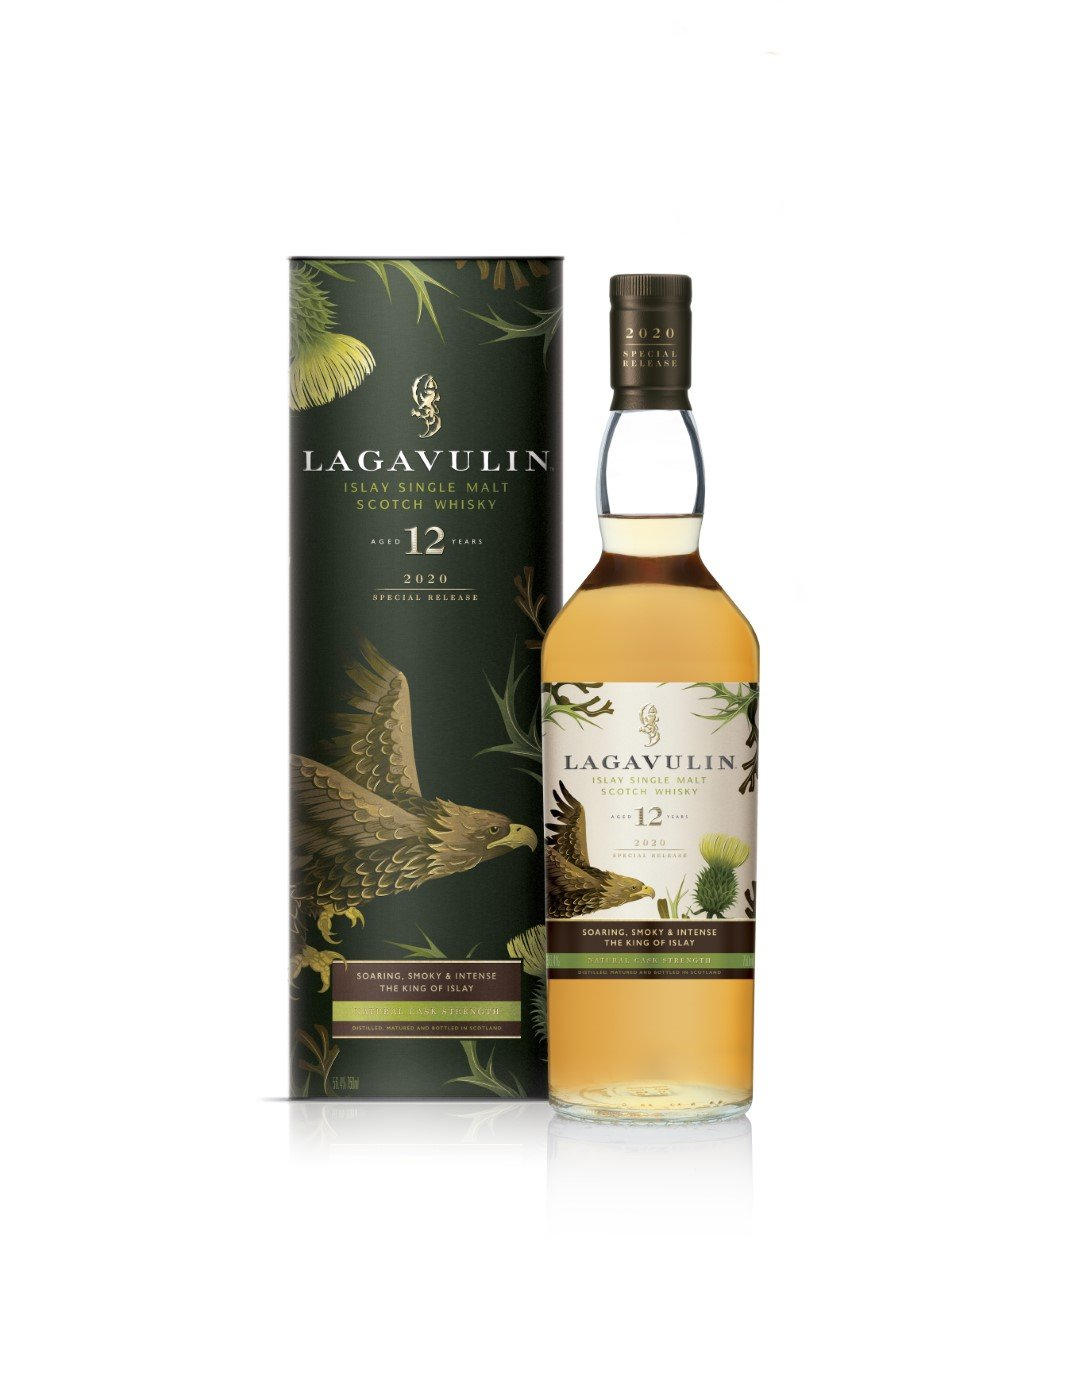 Lagavulin 12 Years Old Limited Edition 2020